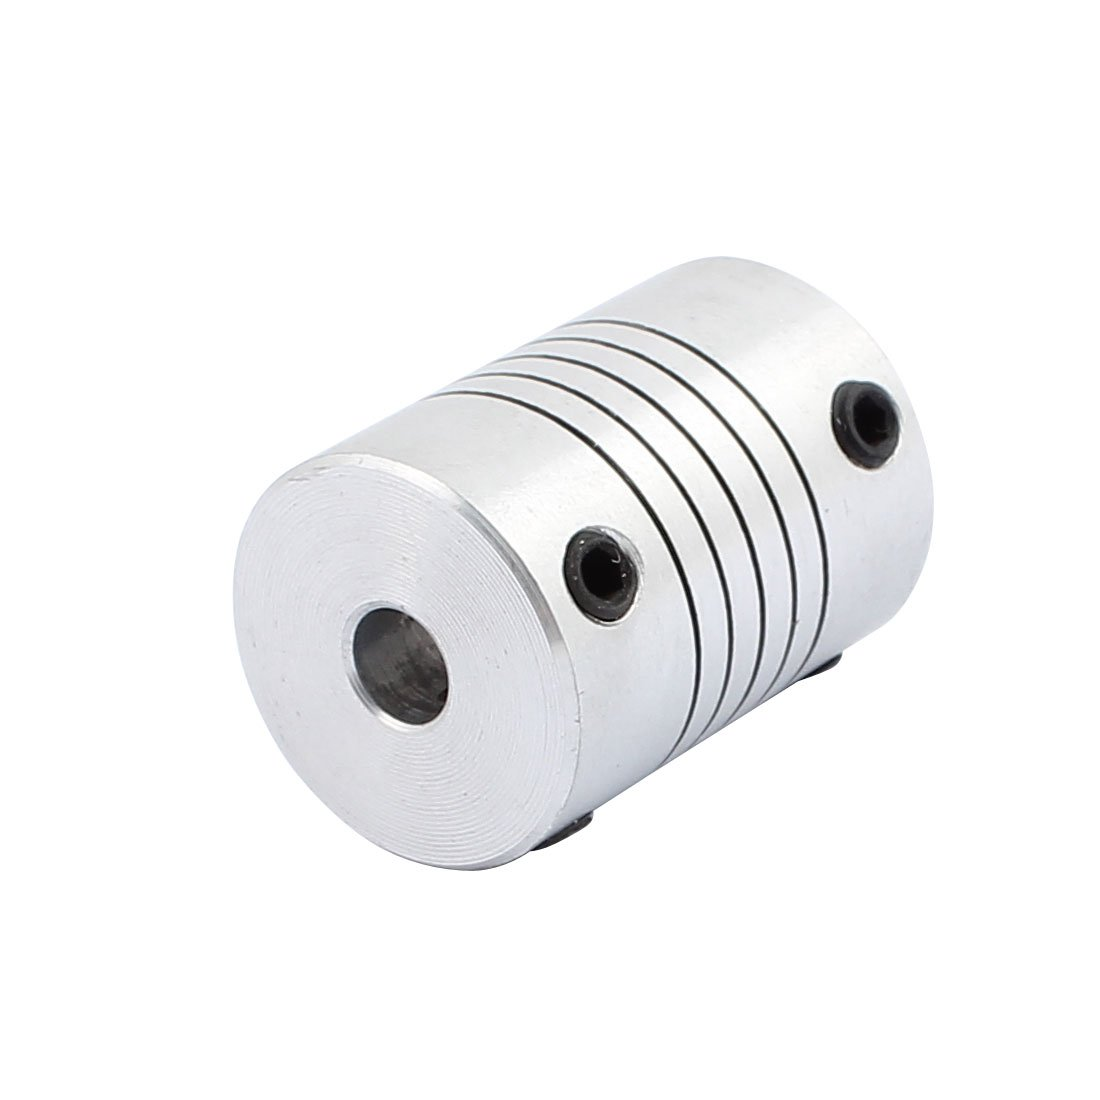 uxcell 6mm to 8mm Aluminium Alloy Encode Sorghum Coupling Joint DIY Motor Shaft Adapter